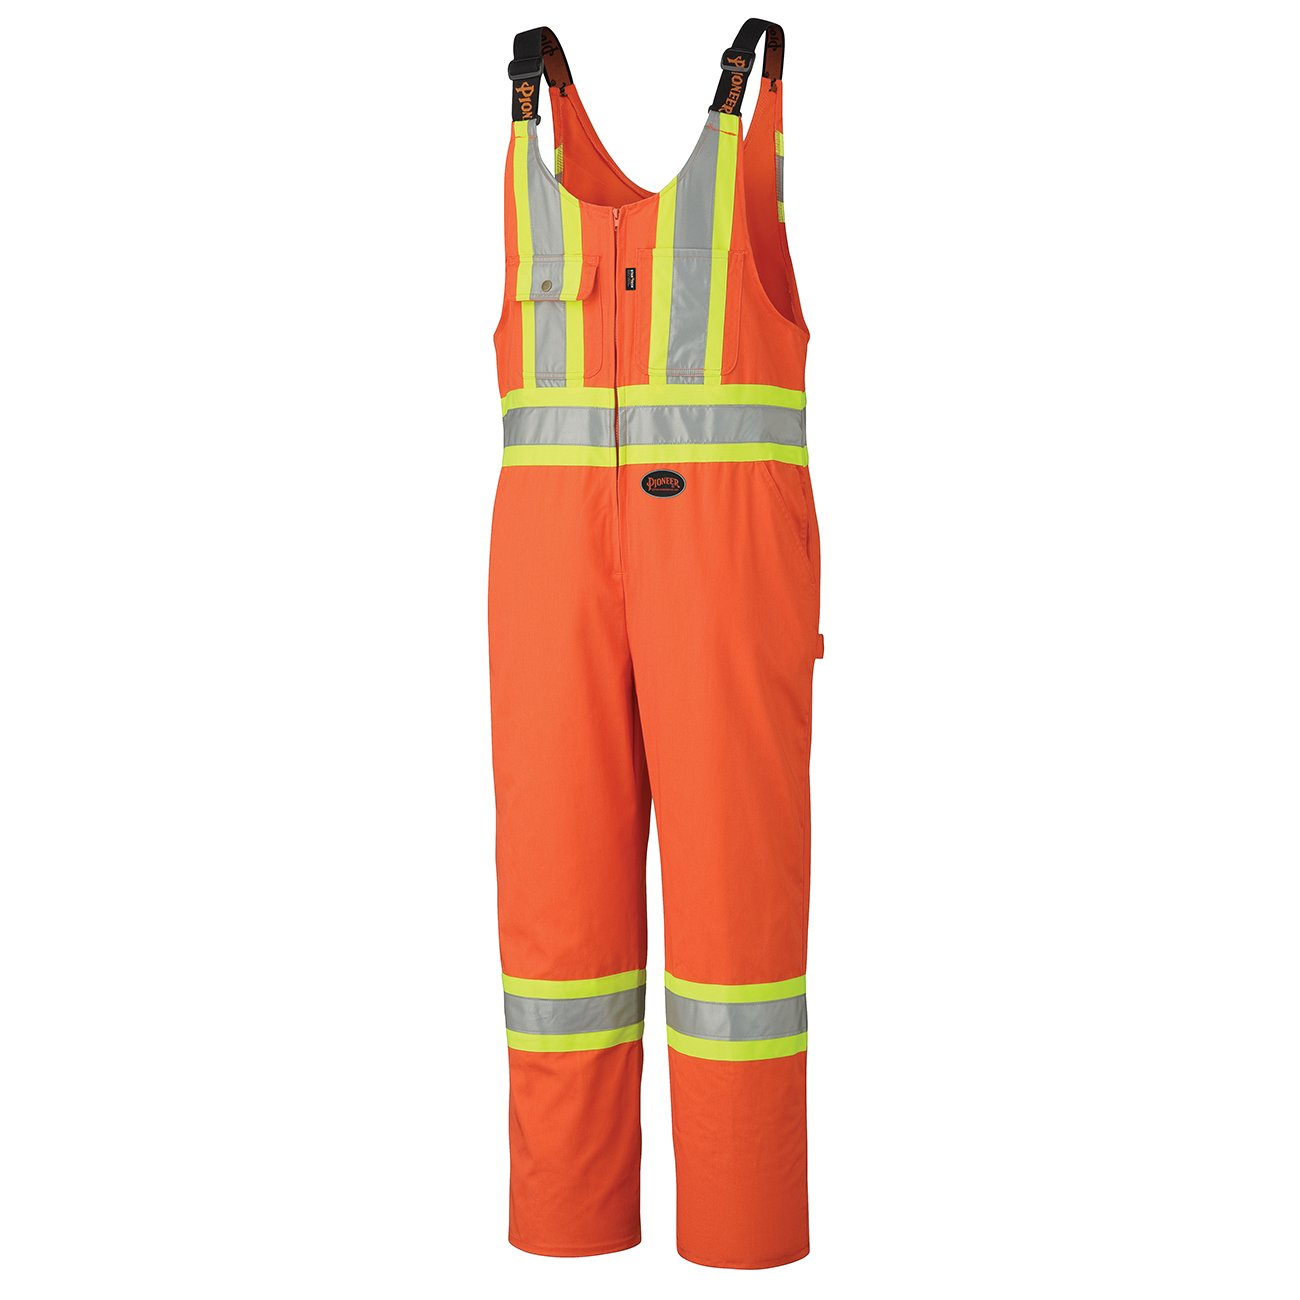 Pioneer V203018T-58 Tall Fit High Visibility Work Overall - 7 Reinforced Pockets, 2-Way Zipper, Blue, 58